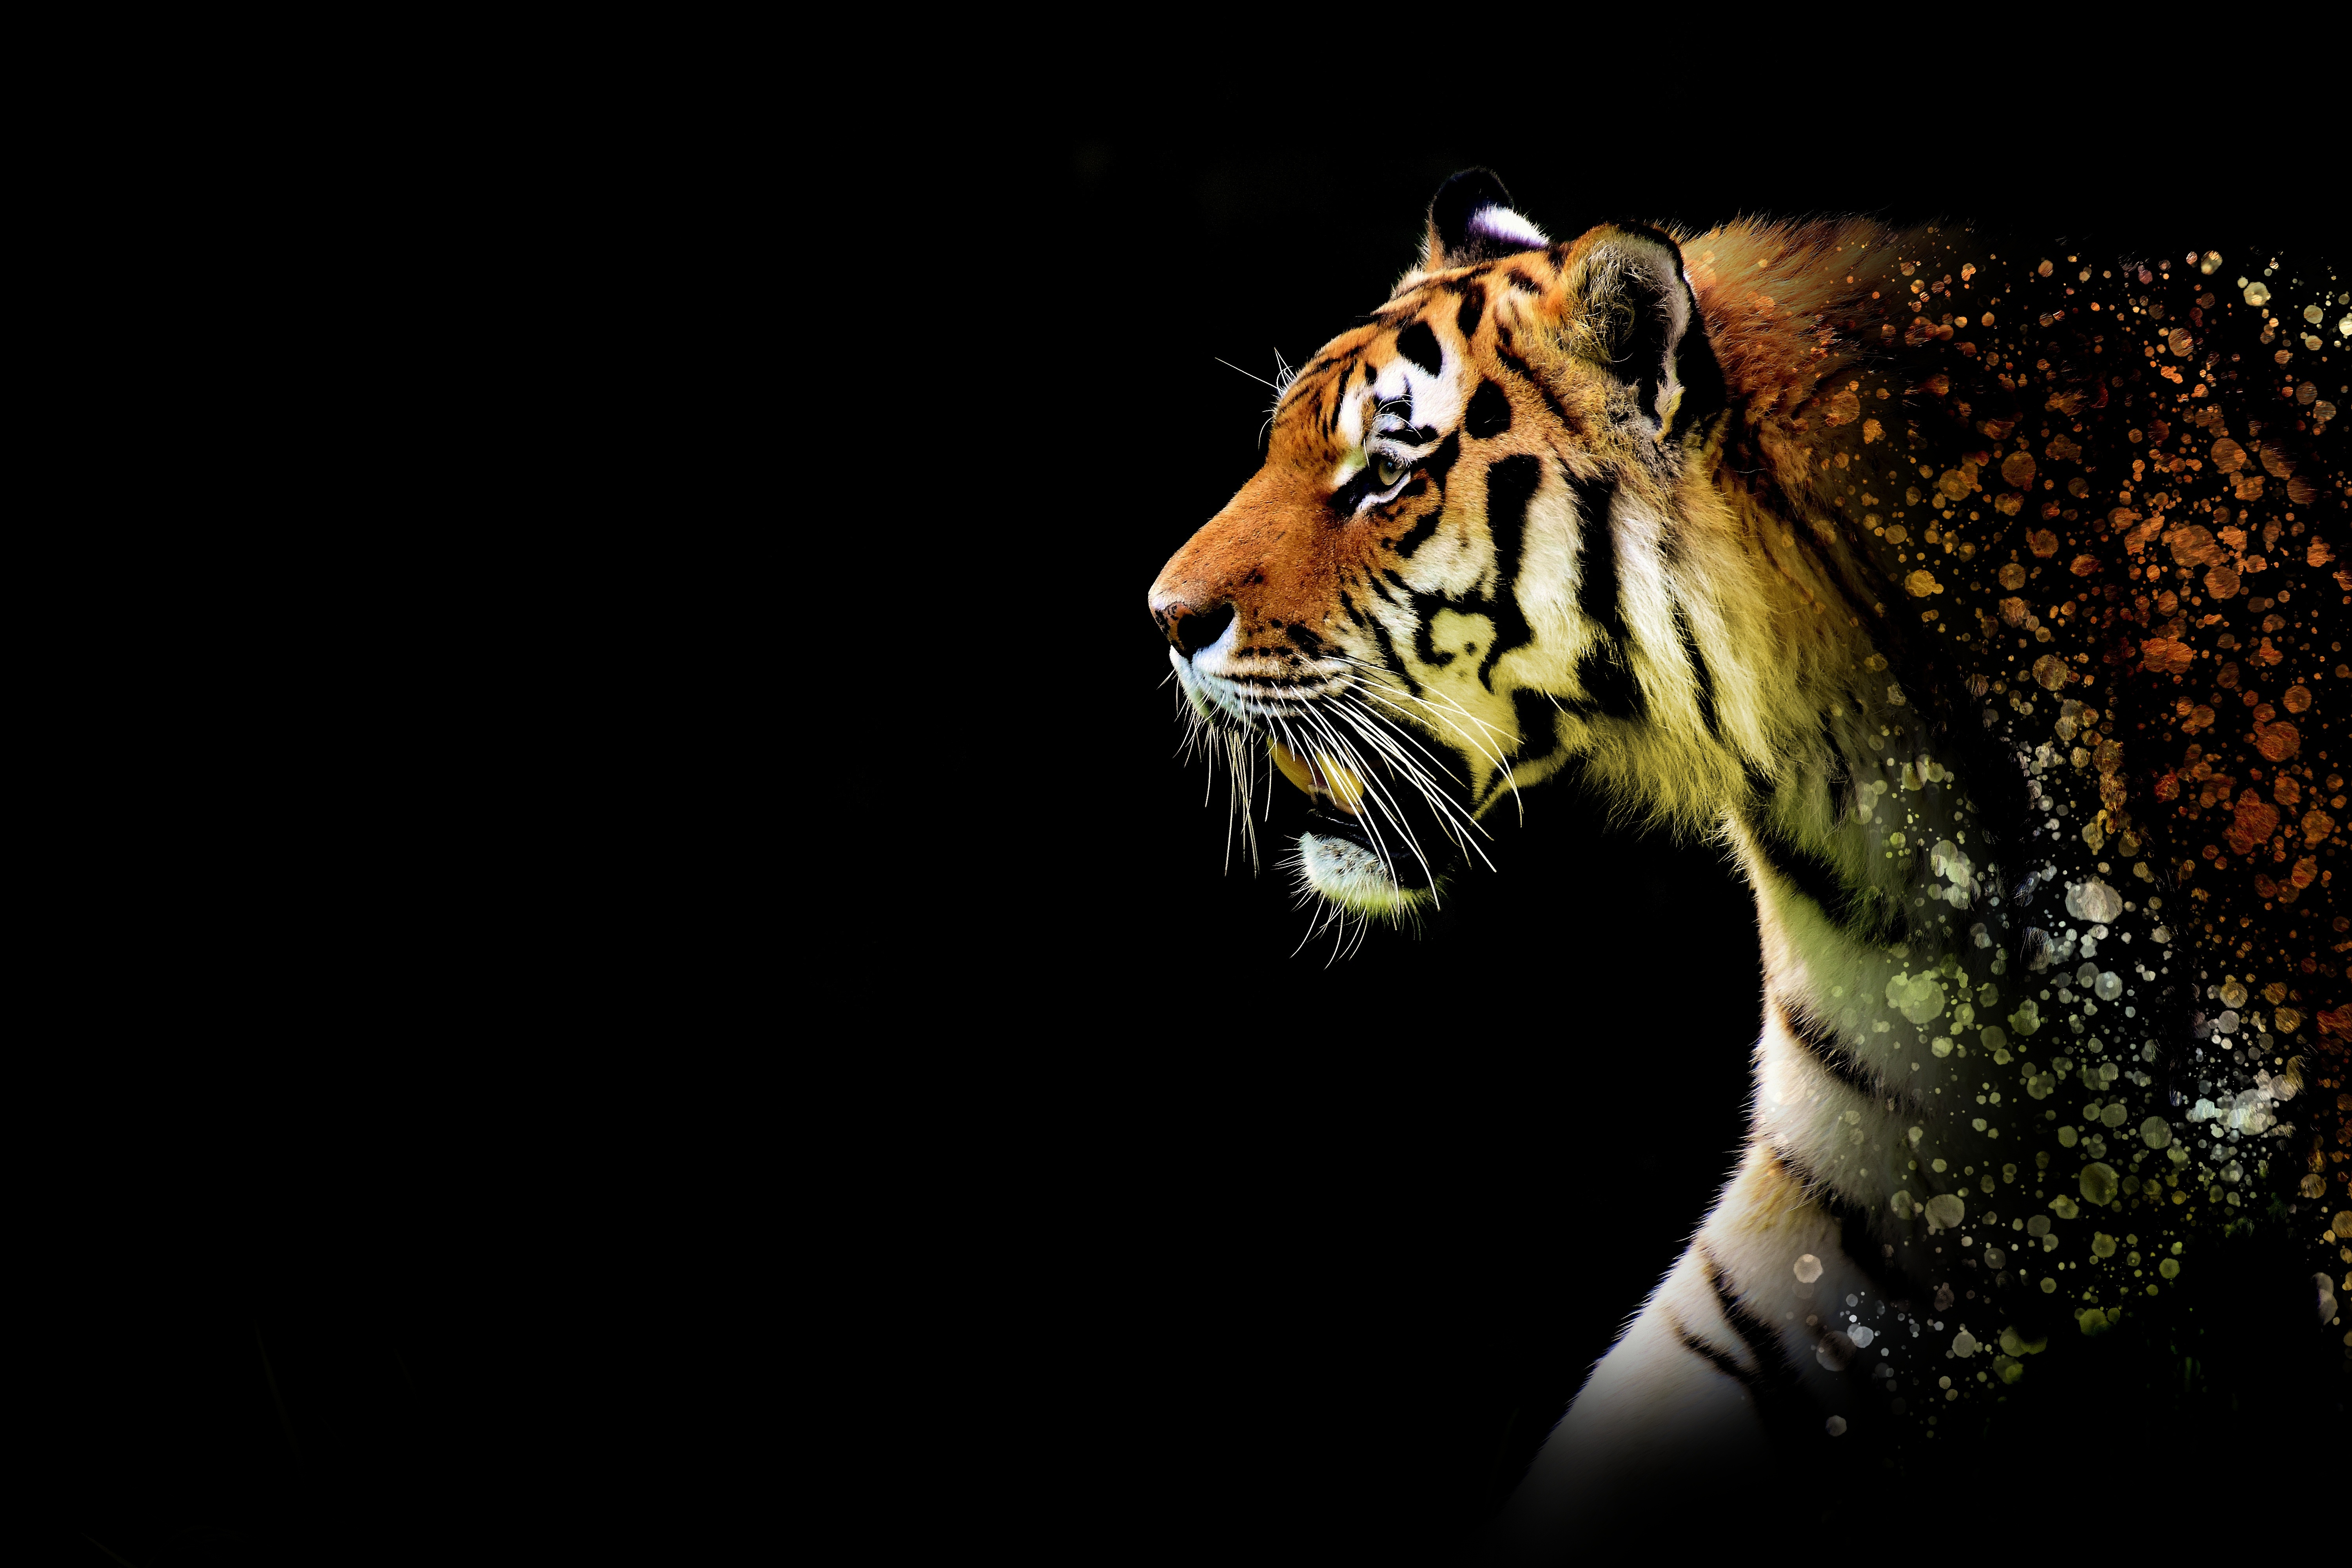 Hd Tiger Pictures Tiger Wallpapers: Tiger Abstract 5k, HD Animals, 4k Wallpapers, Images